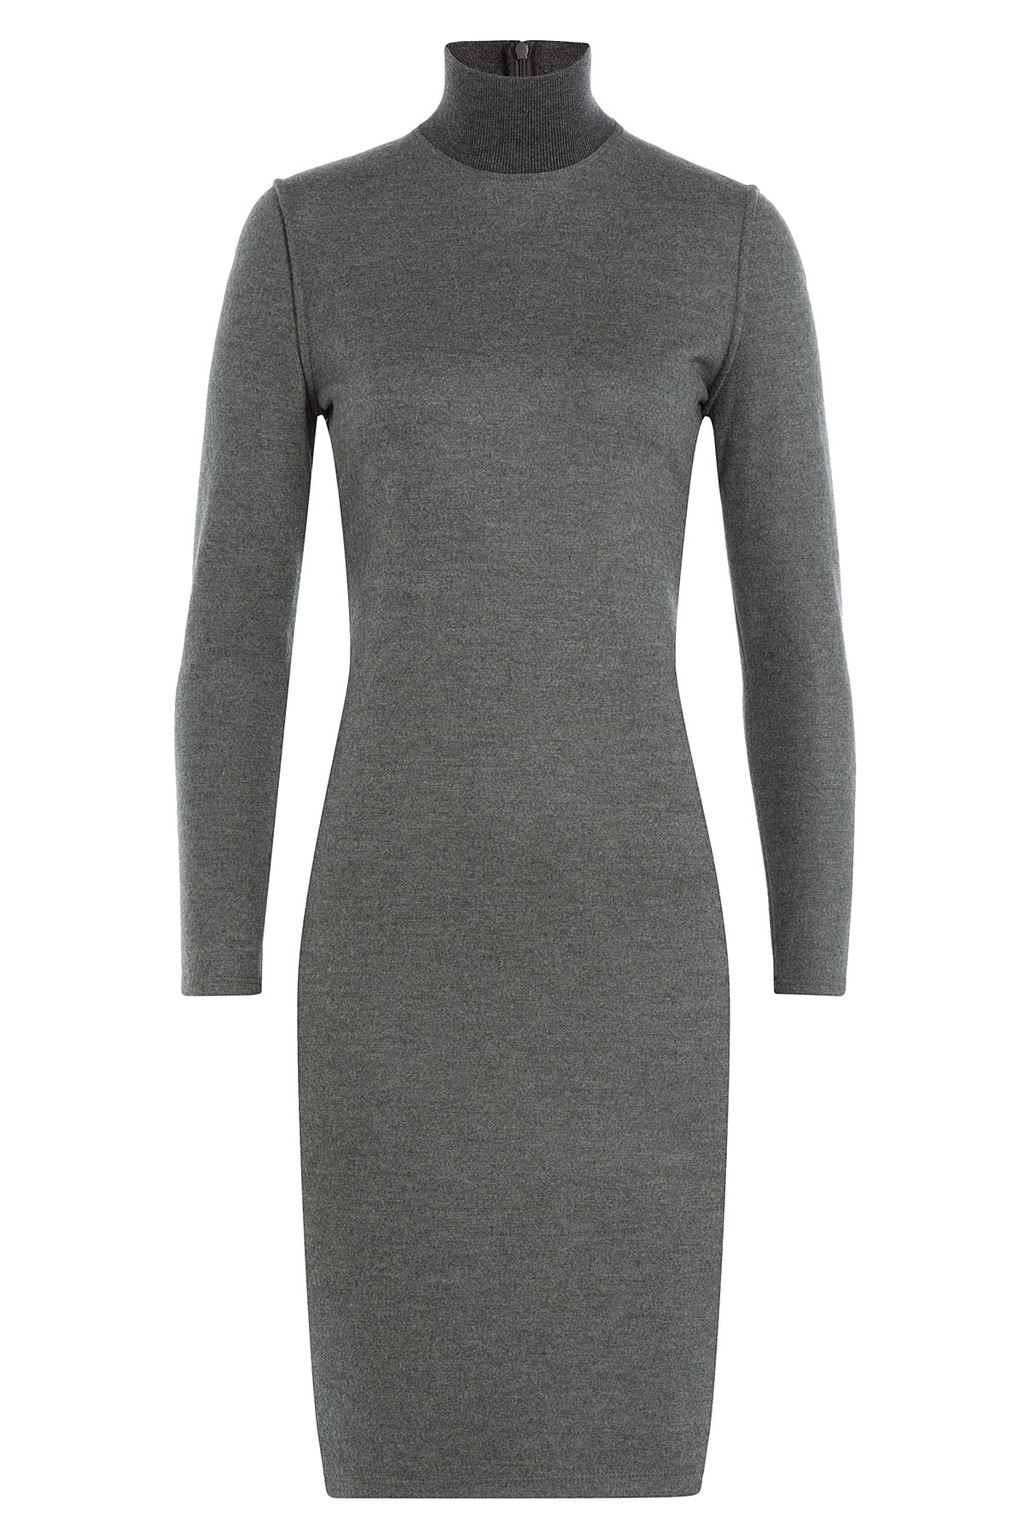 Wool Dress - fit: tight; pattern: plain; style: bodycon; neckline: roll neck; predominant colour: mid grey; length: on the knee; sleeve length: long sleeve; sleeve style: standard; pattern type: knitted - fine stitch; texture group: jersey - stretchy/drapey; occasions: creative work; season: a/w 2015; wardrobe: investment